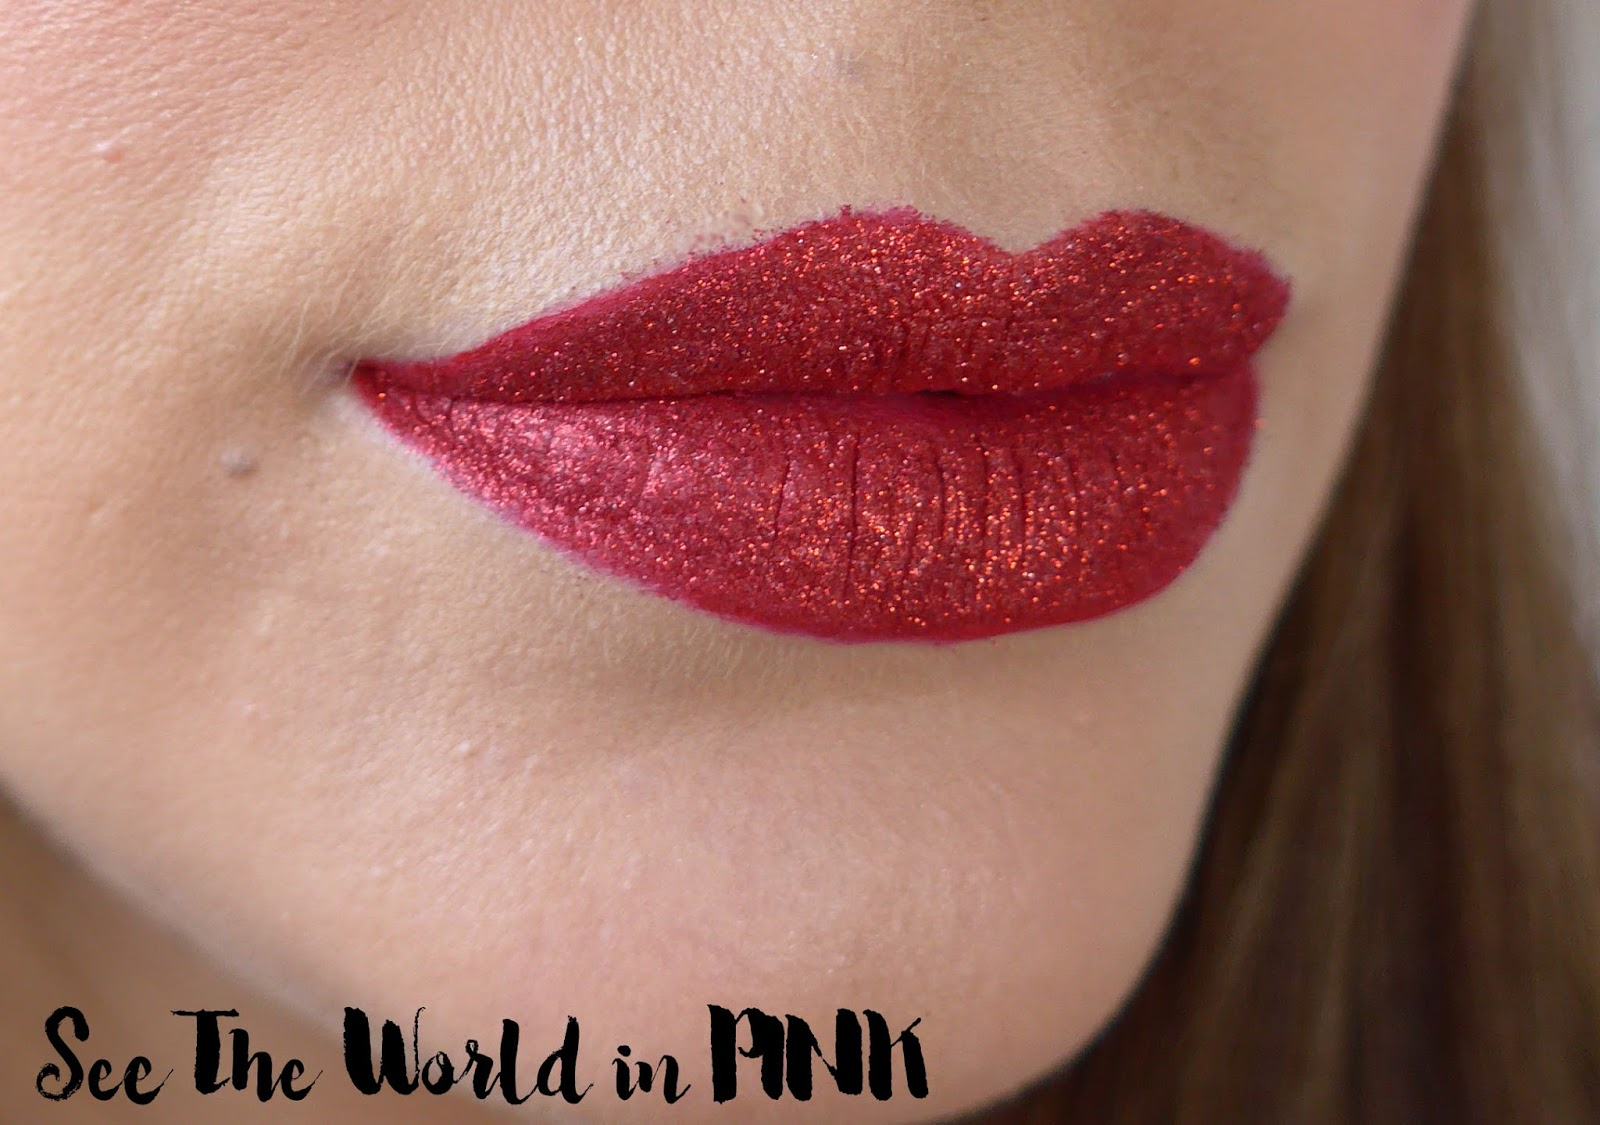 Red Glitter Lips - Valentine's Day Makeup!